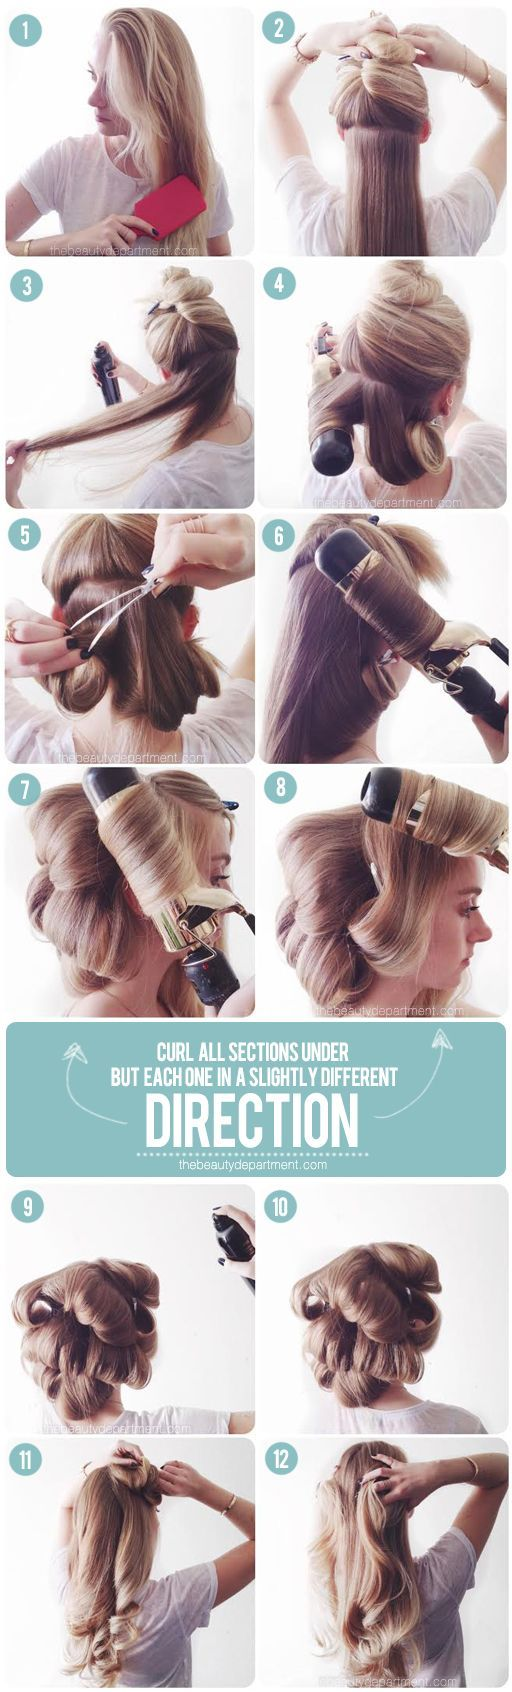 tutorial for faking a pro blowout and getting big, soft, classic waves. #hair #blowout #beauty